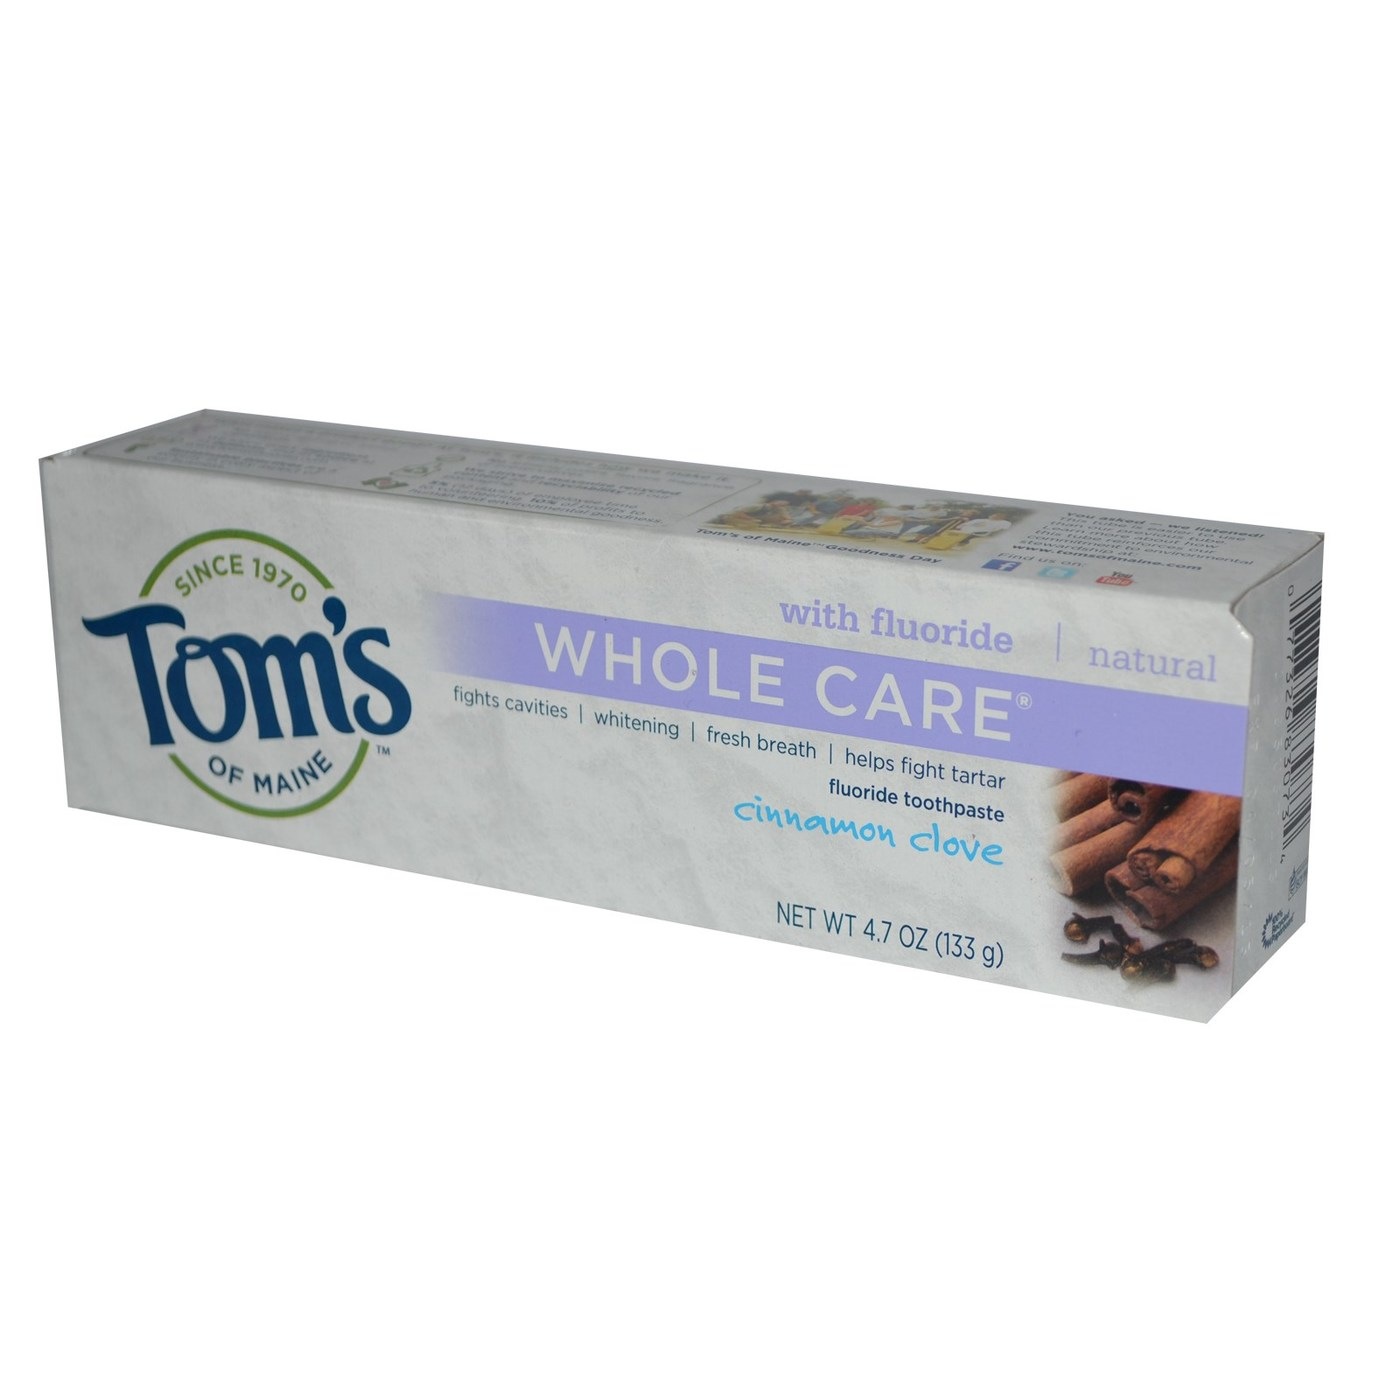 Tom S Of Maine Whole Care Cinnamon Clove Natural Toothpaste